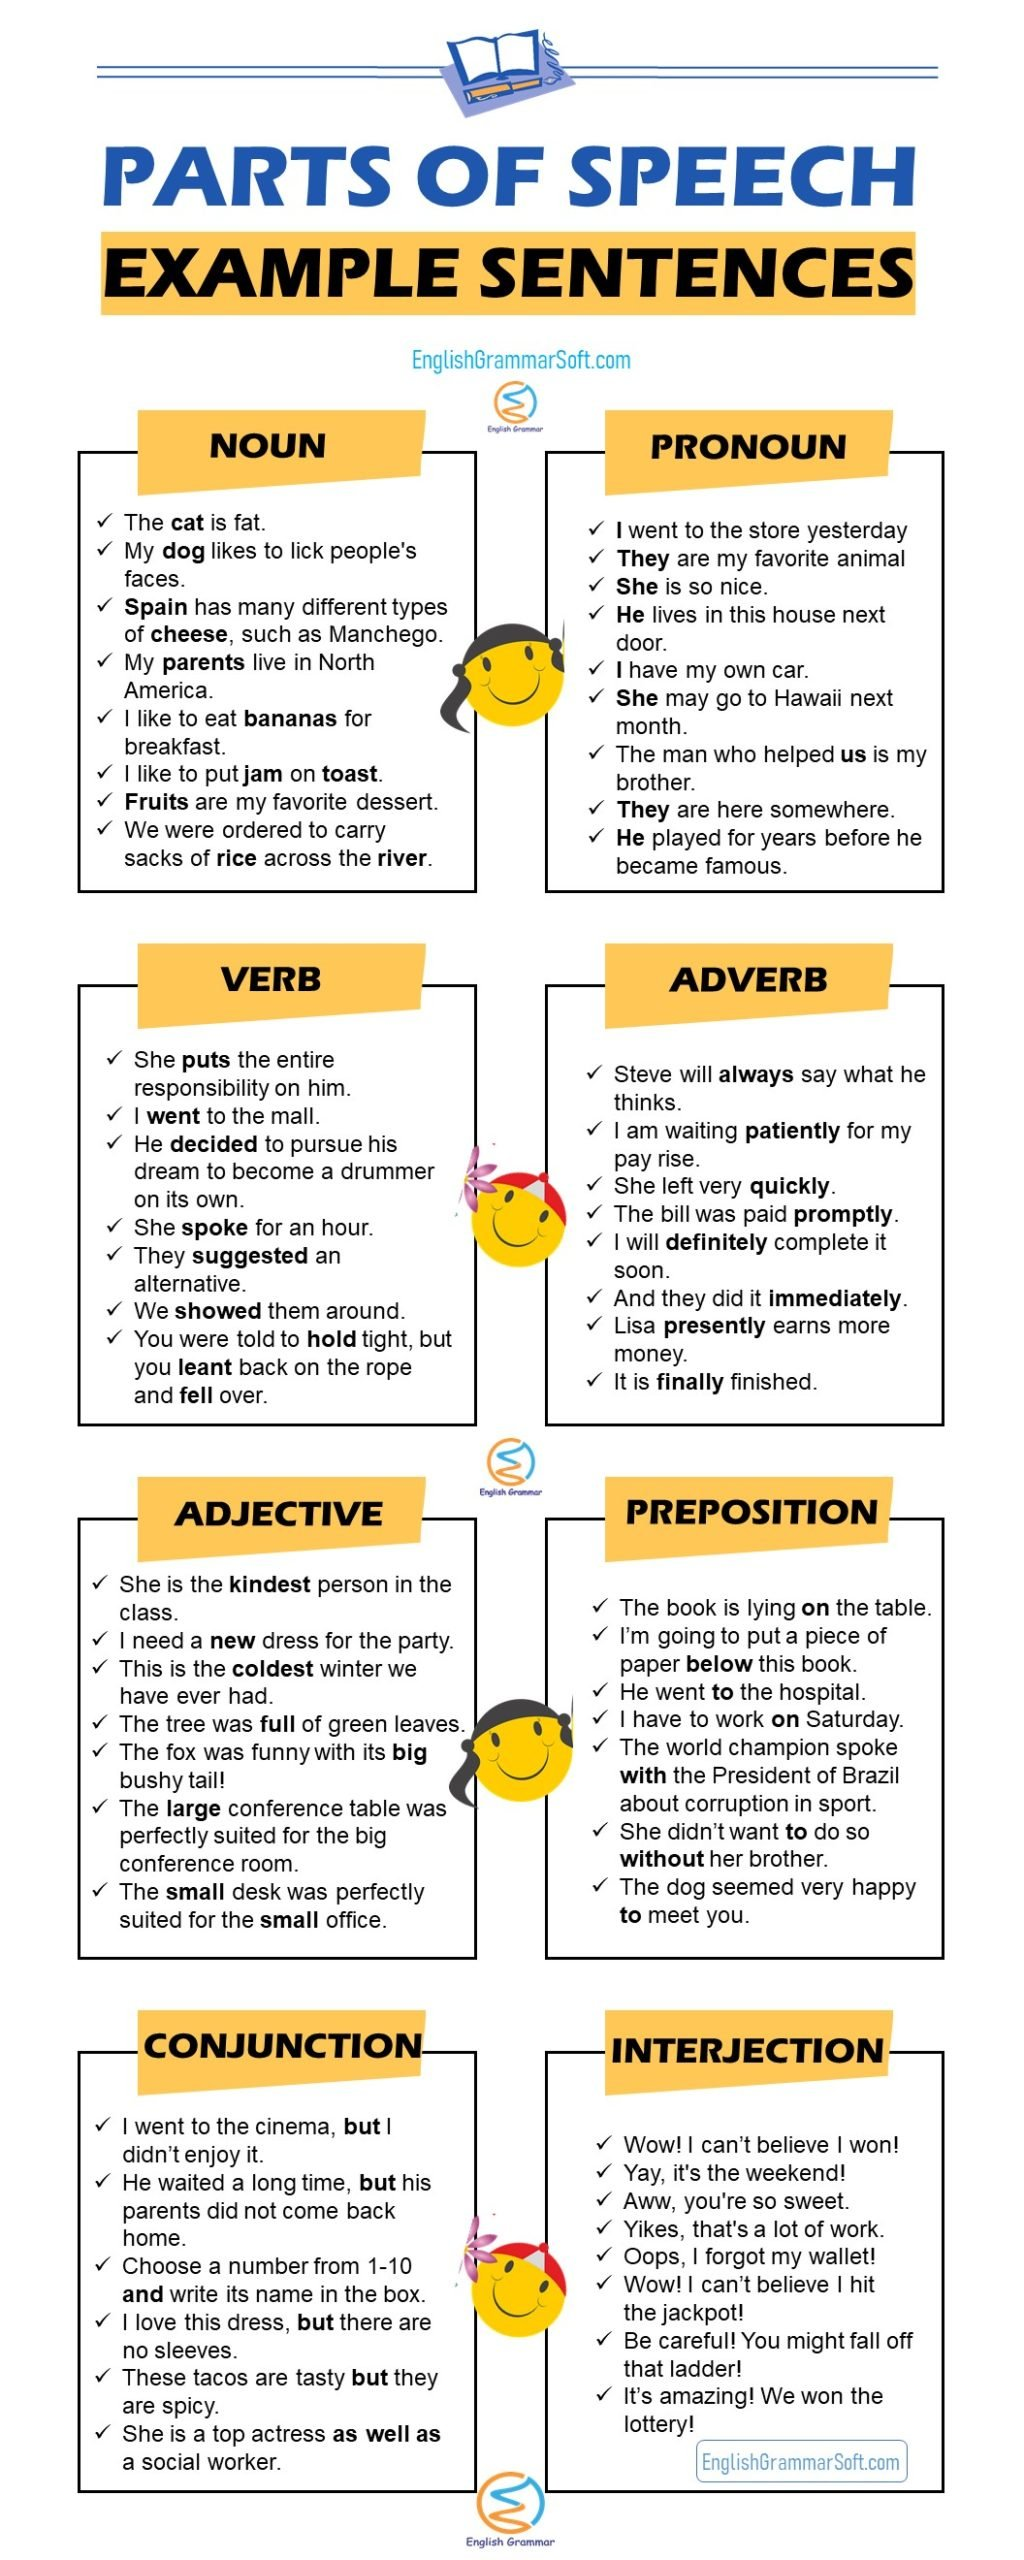 The Parts of Speech Examples (mixed sentences)